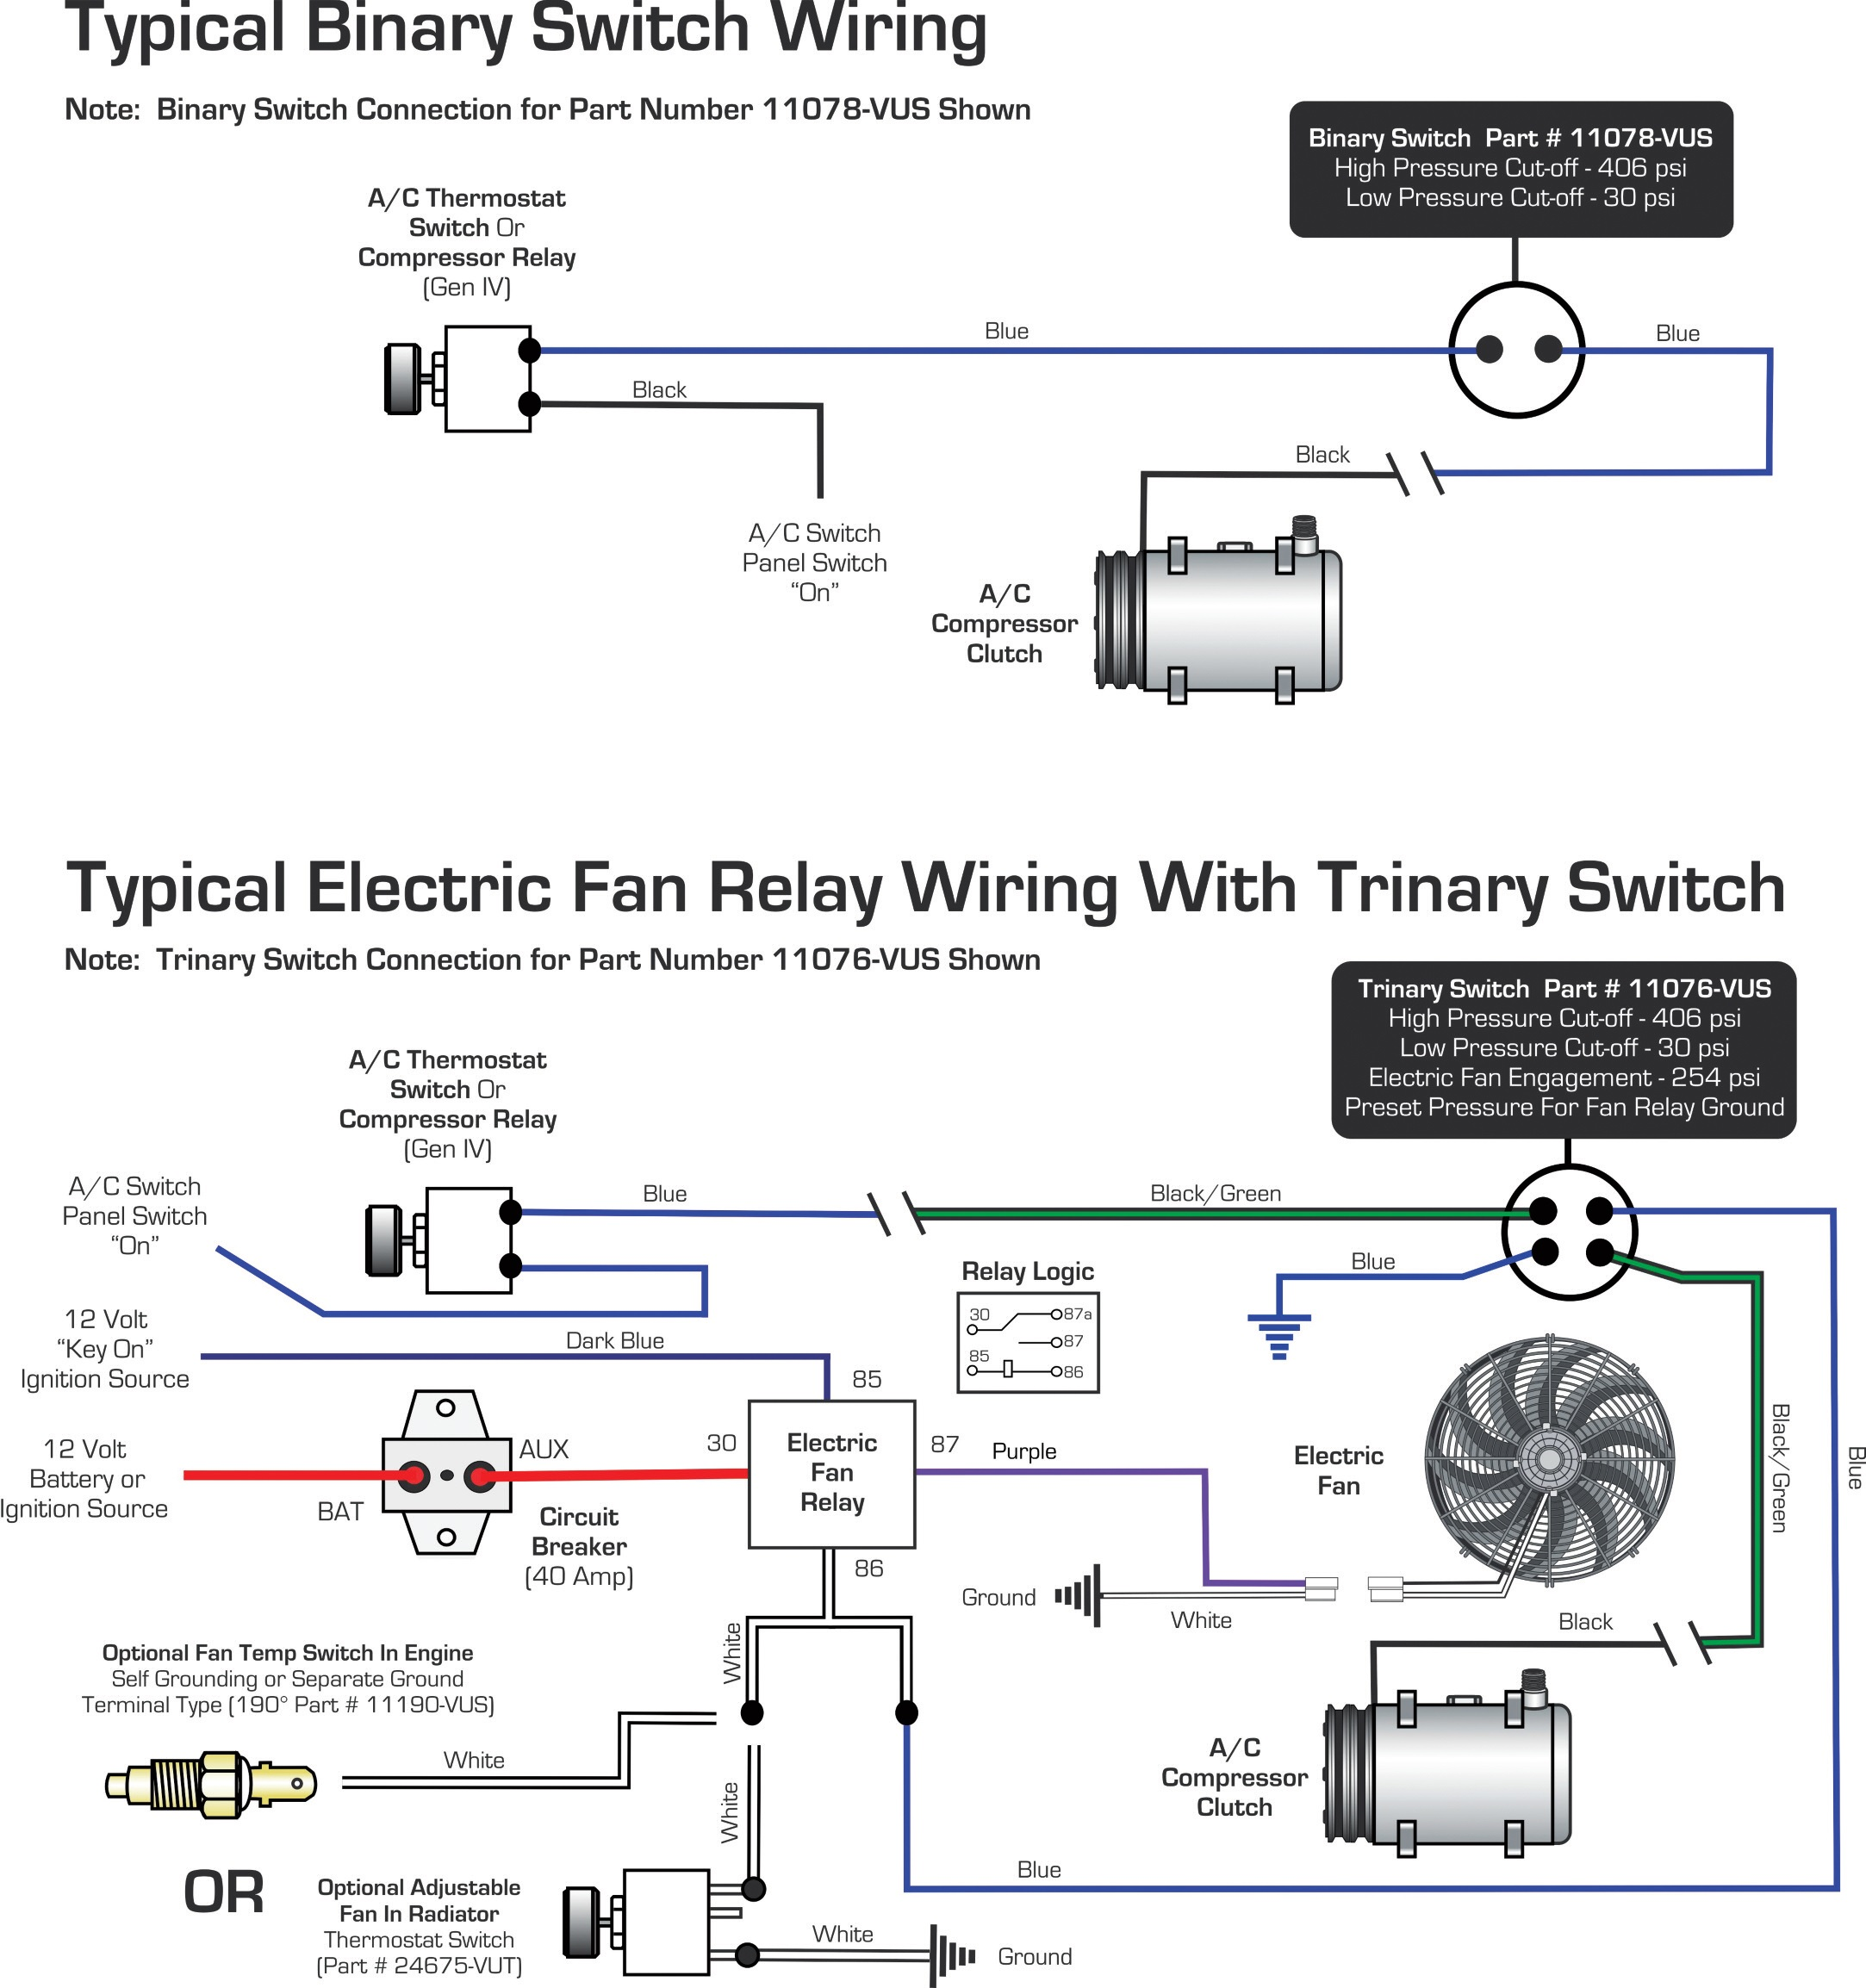 1 80 vintage air blog archive wiring diagrams binary switch trinary trinary switch wiring diagram at gsmportal.co